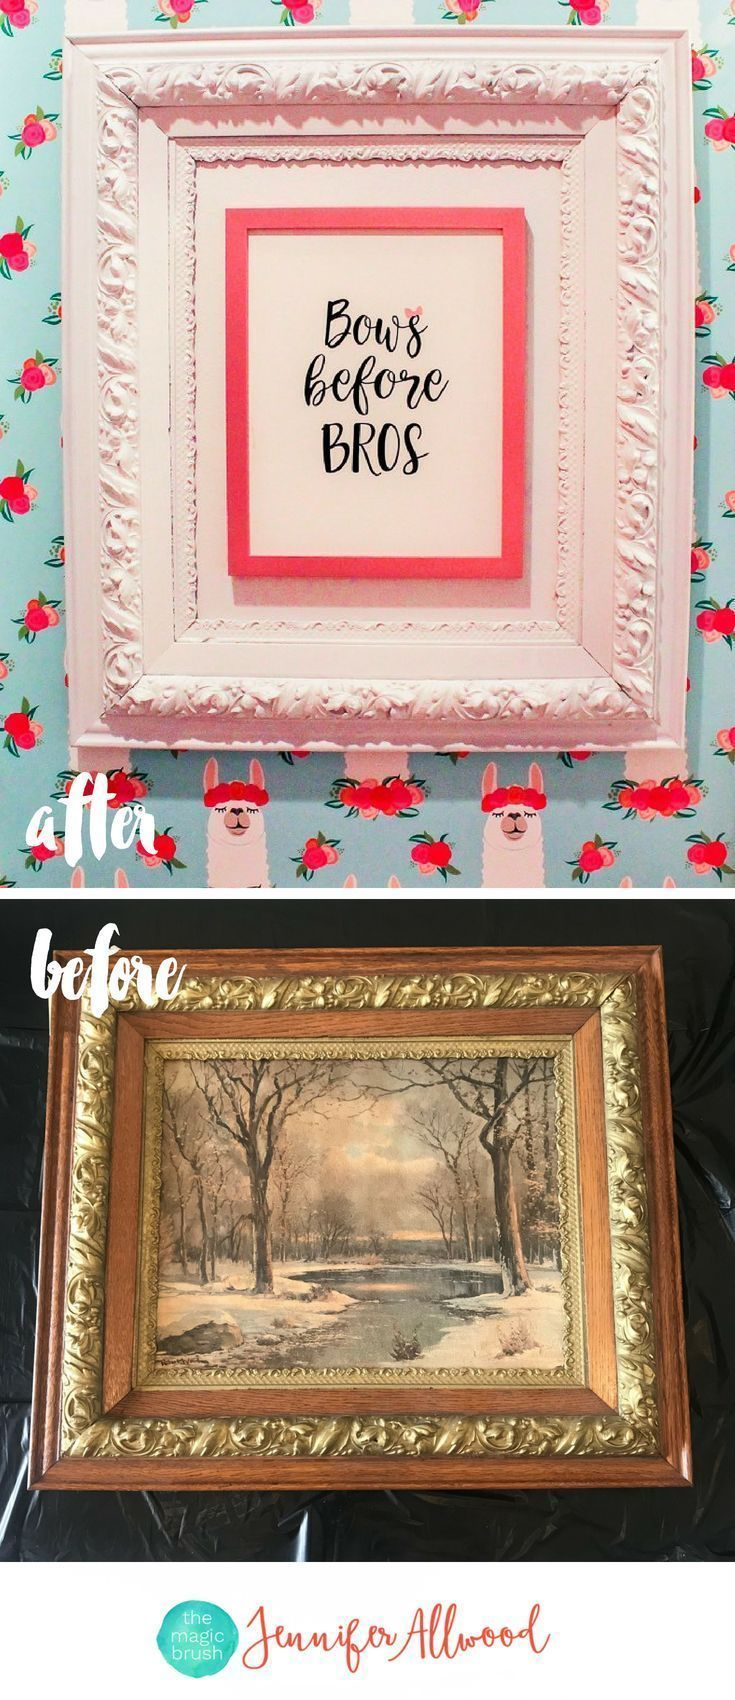 How to's : Thrift Store Frame Makeover - How to Frame Small Art Prints to be Beautiful and Oversized by Jennifer Allwood - Repurposed Picture Frame Ideas #diy #repurposed #walldecor #girlart #upcycled #hobbylobbyfinds Girls Bathroom Art -